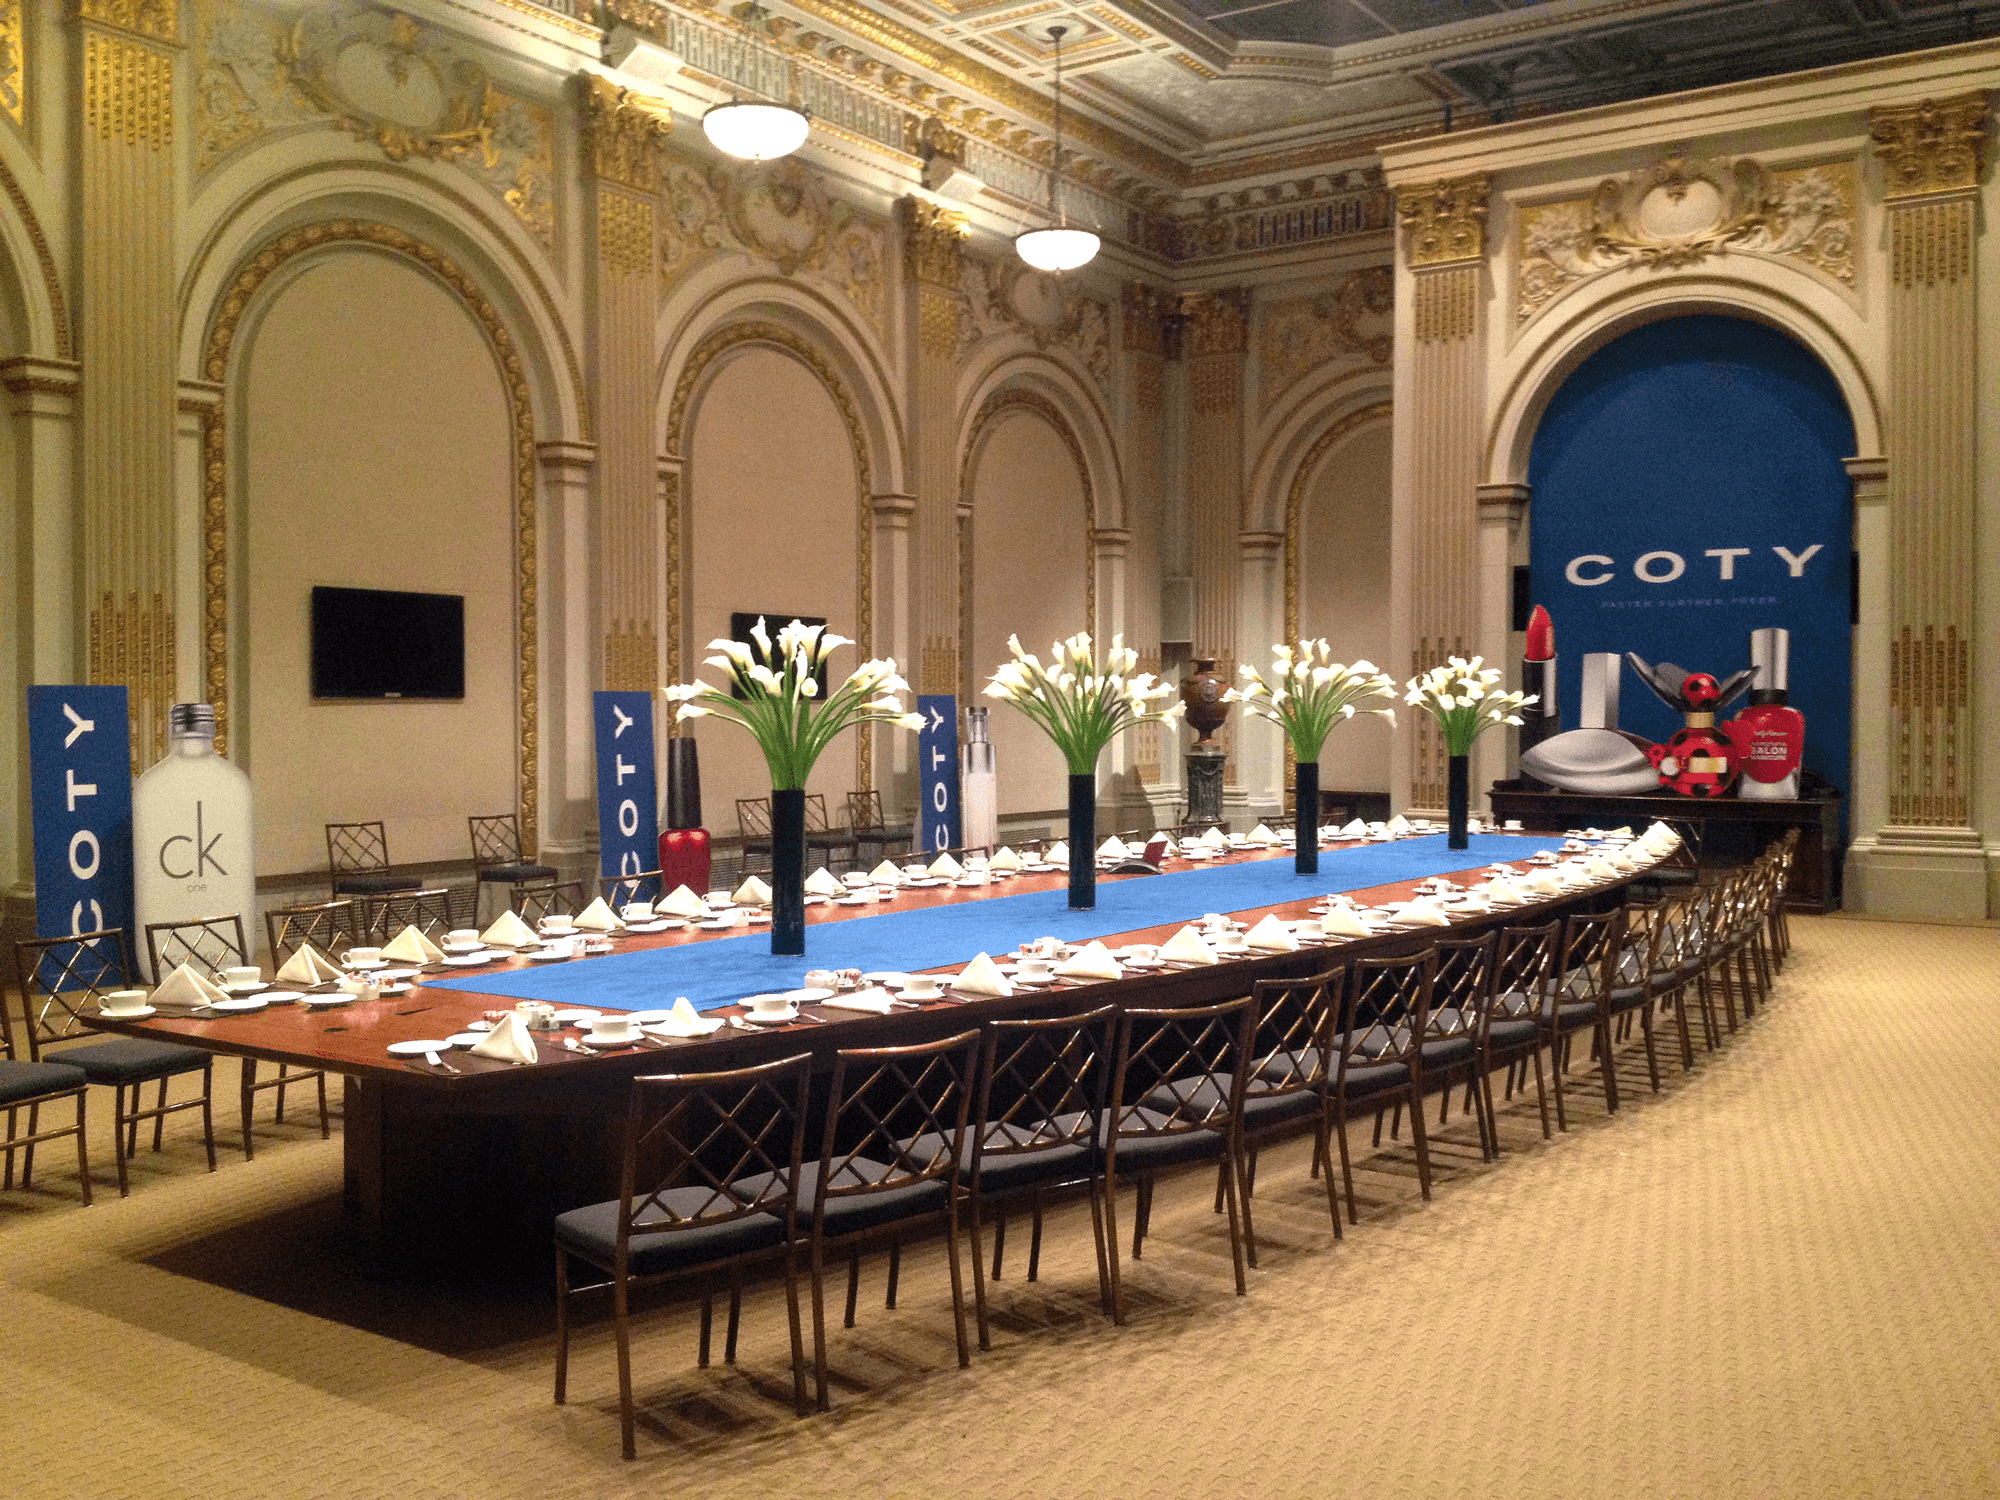 Coty Special Corporate Event - custom indoor banners produced by National Flag & Display, manufacturers of banners and flags in NYC since 1935.